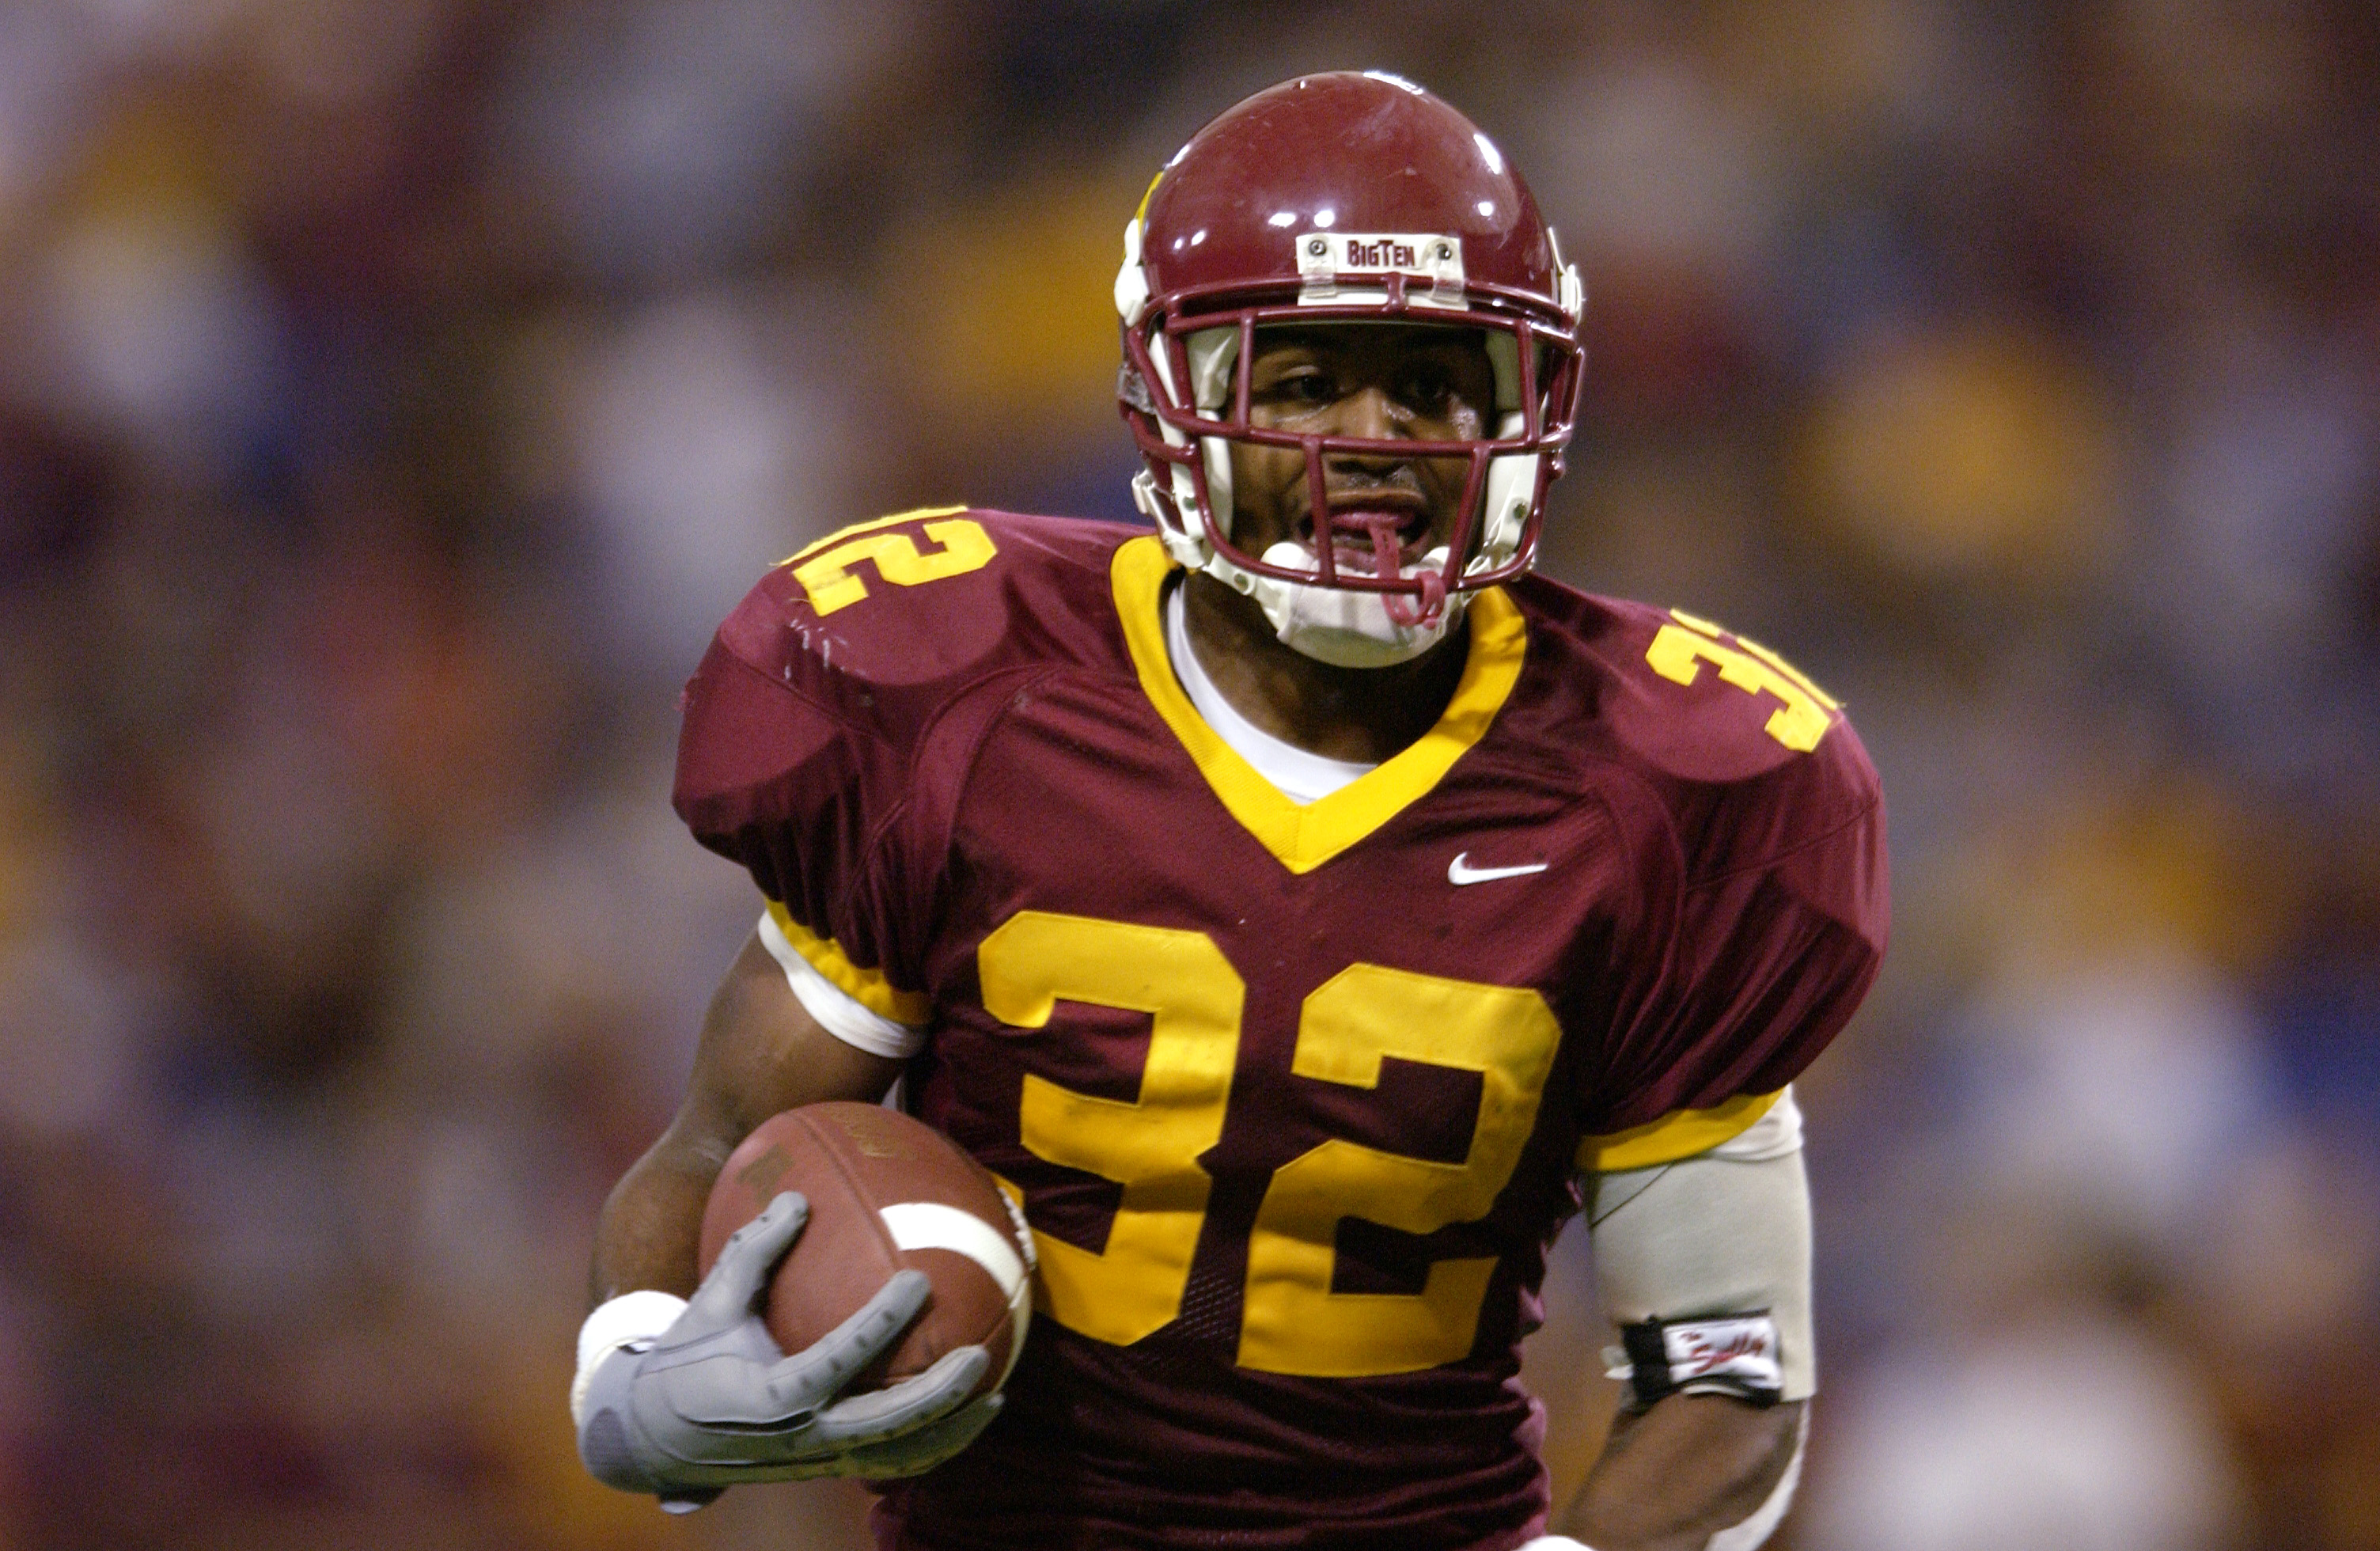 Minnesota Football: The Top 20 Golden Gophers of All Time